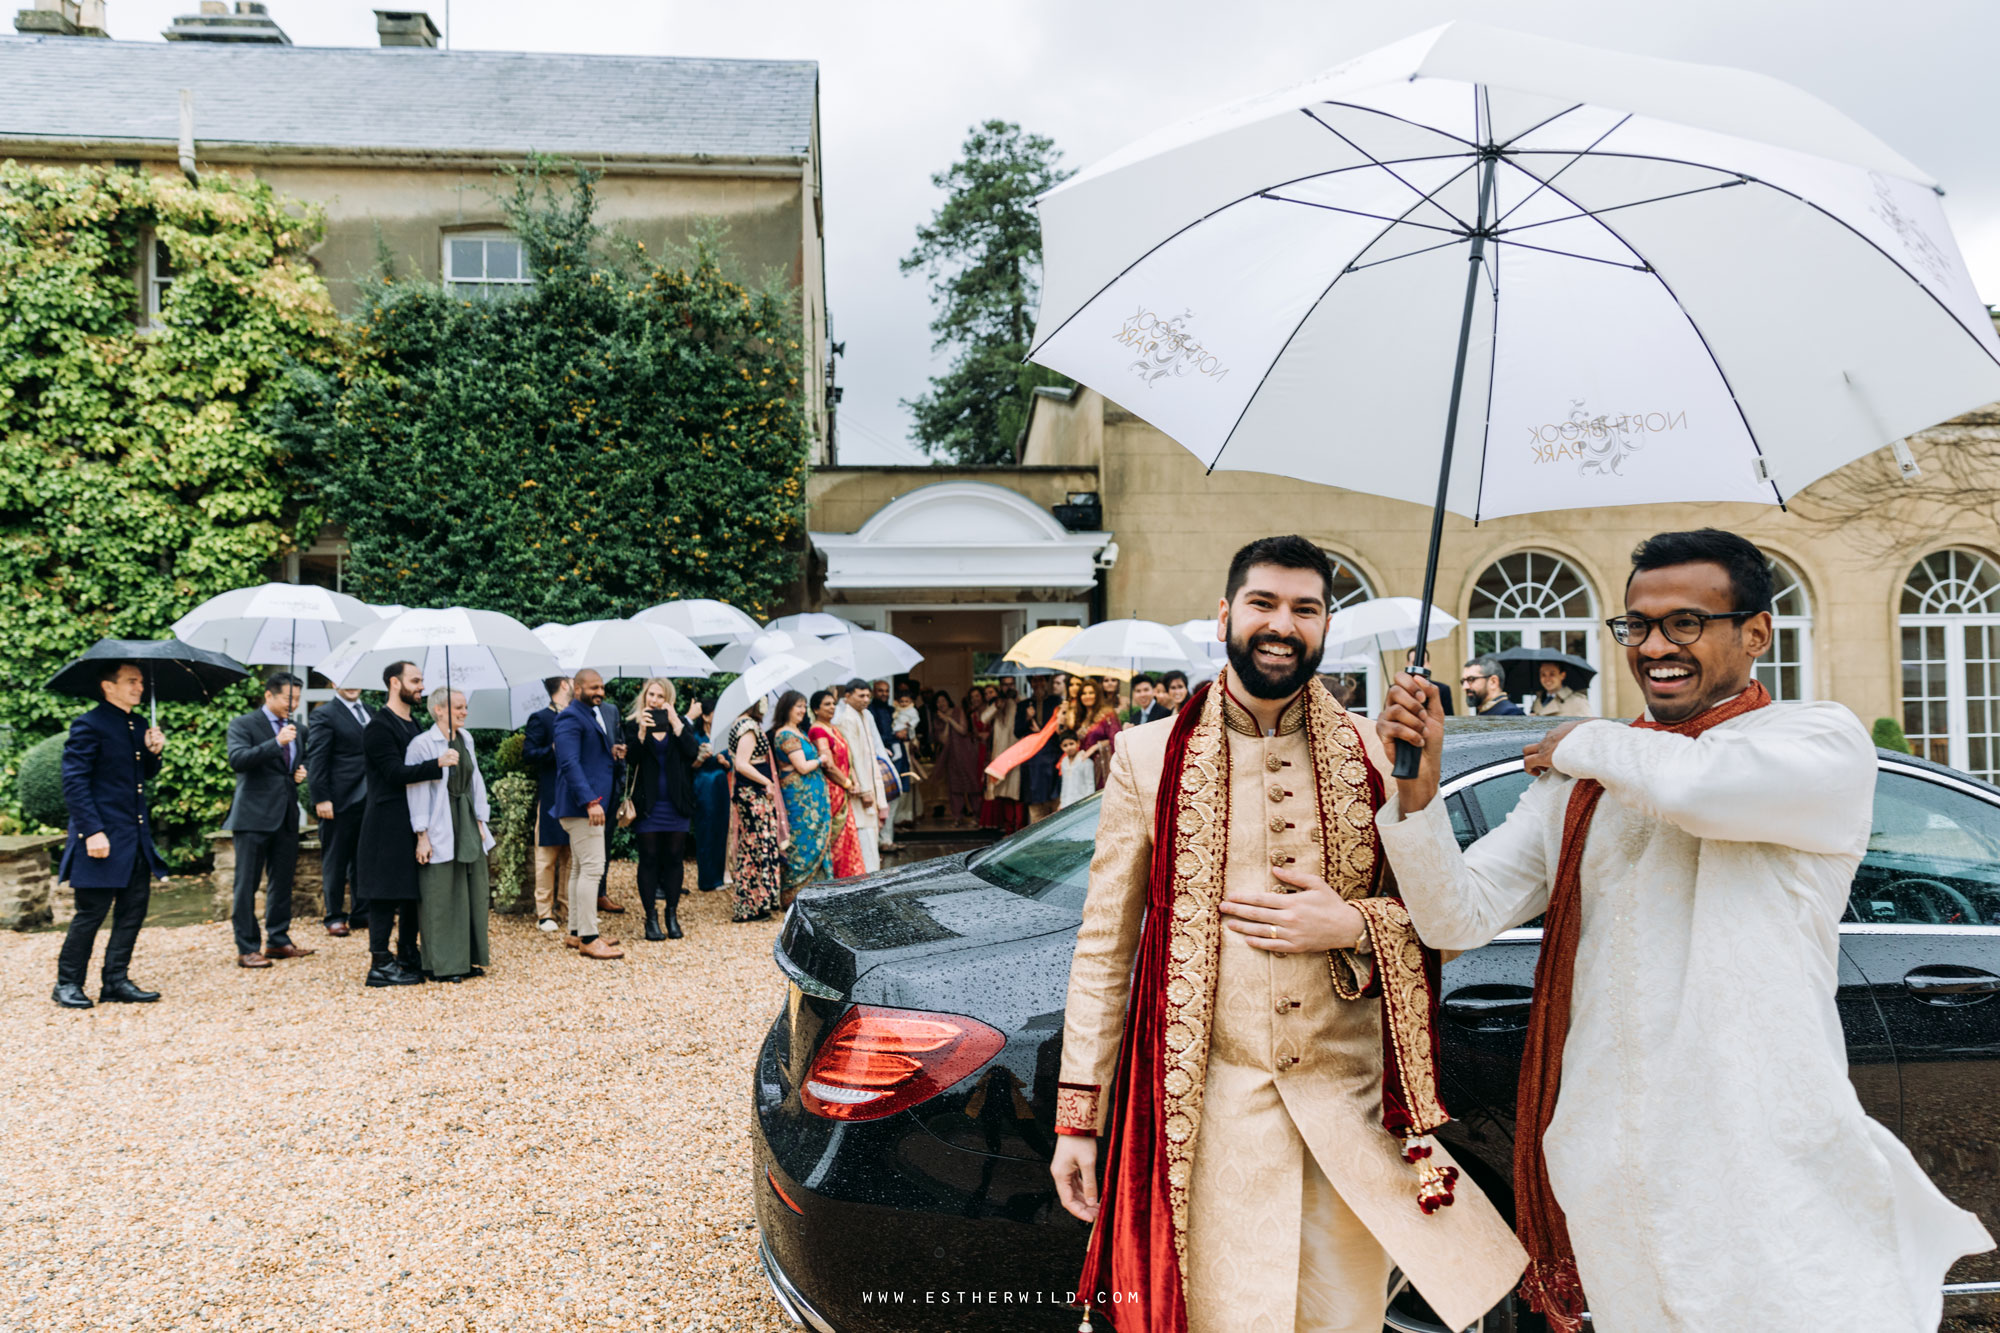 Northbrook_Park_Farnham_Surrey_London_Wedding_Hindu_Fusion_Esther_Wild_Photographer_IMG_3331.jpg